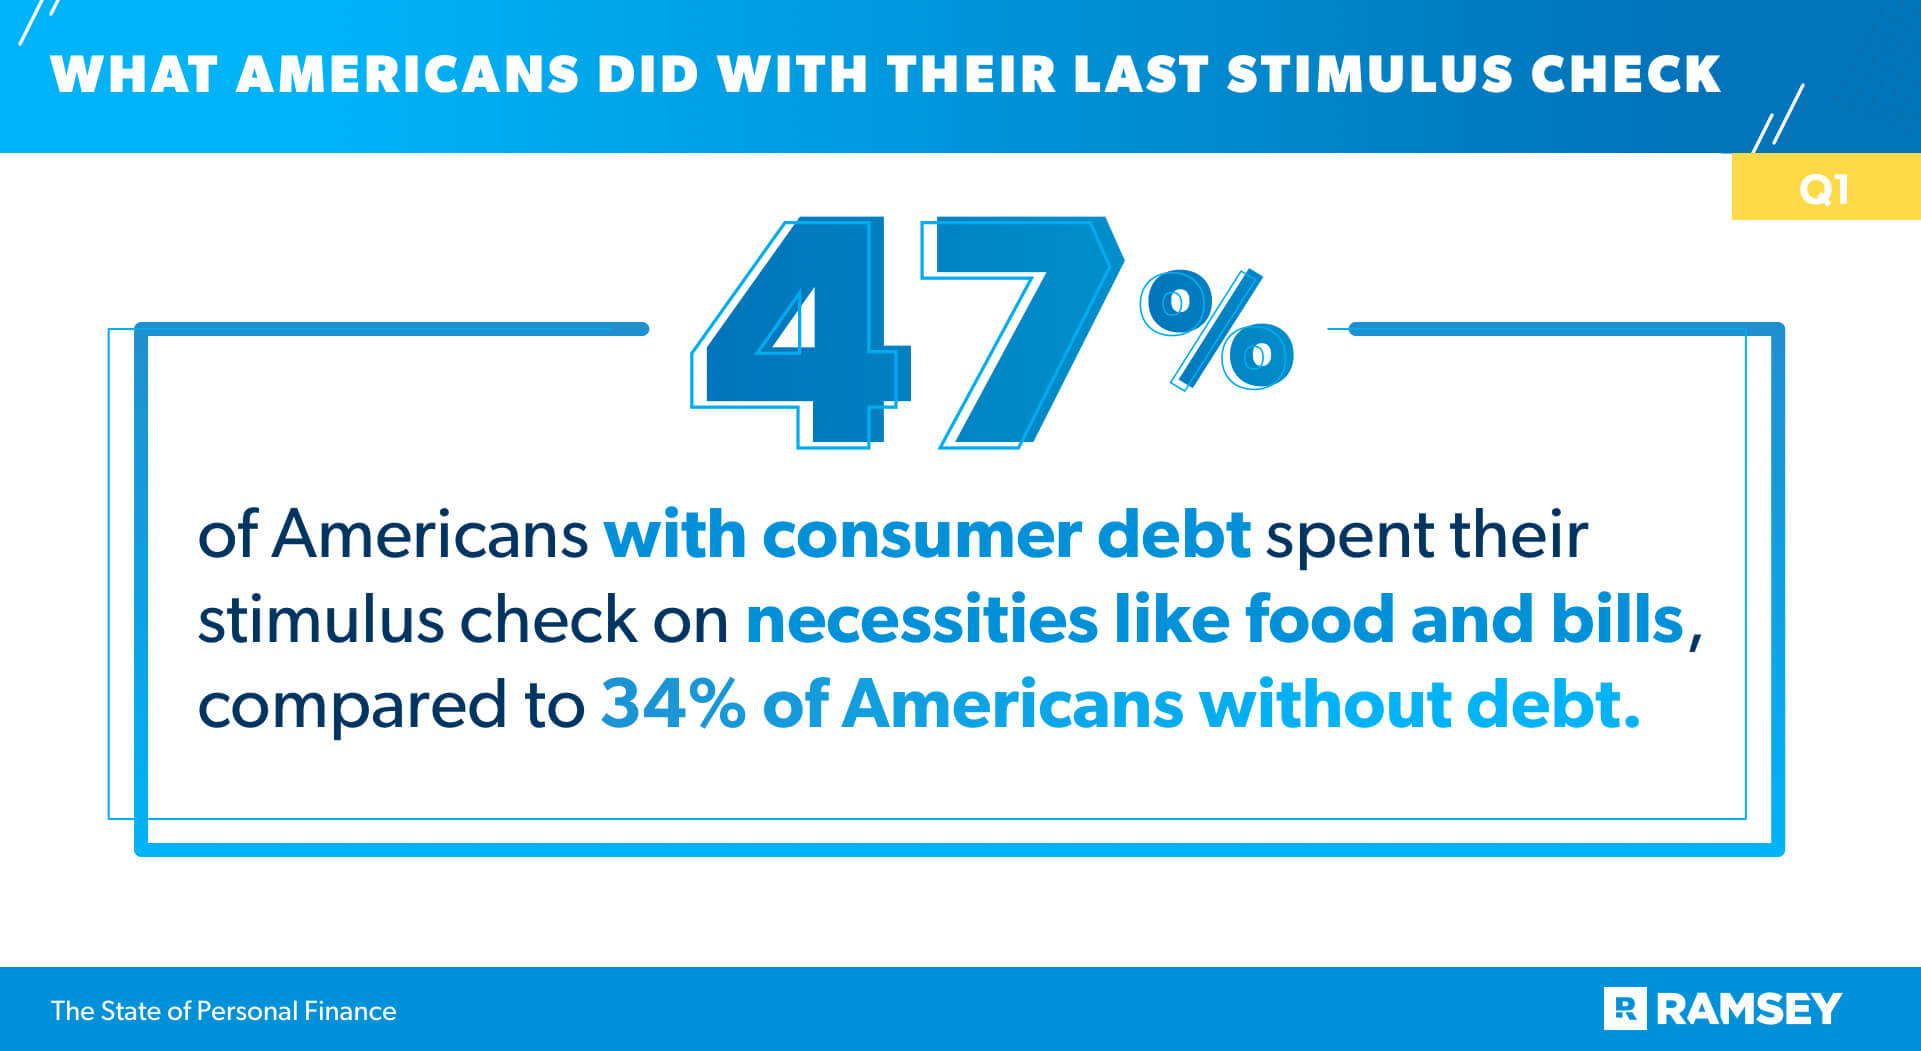 47% of Americans Spent their Stimulus Check on Necessities